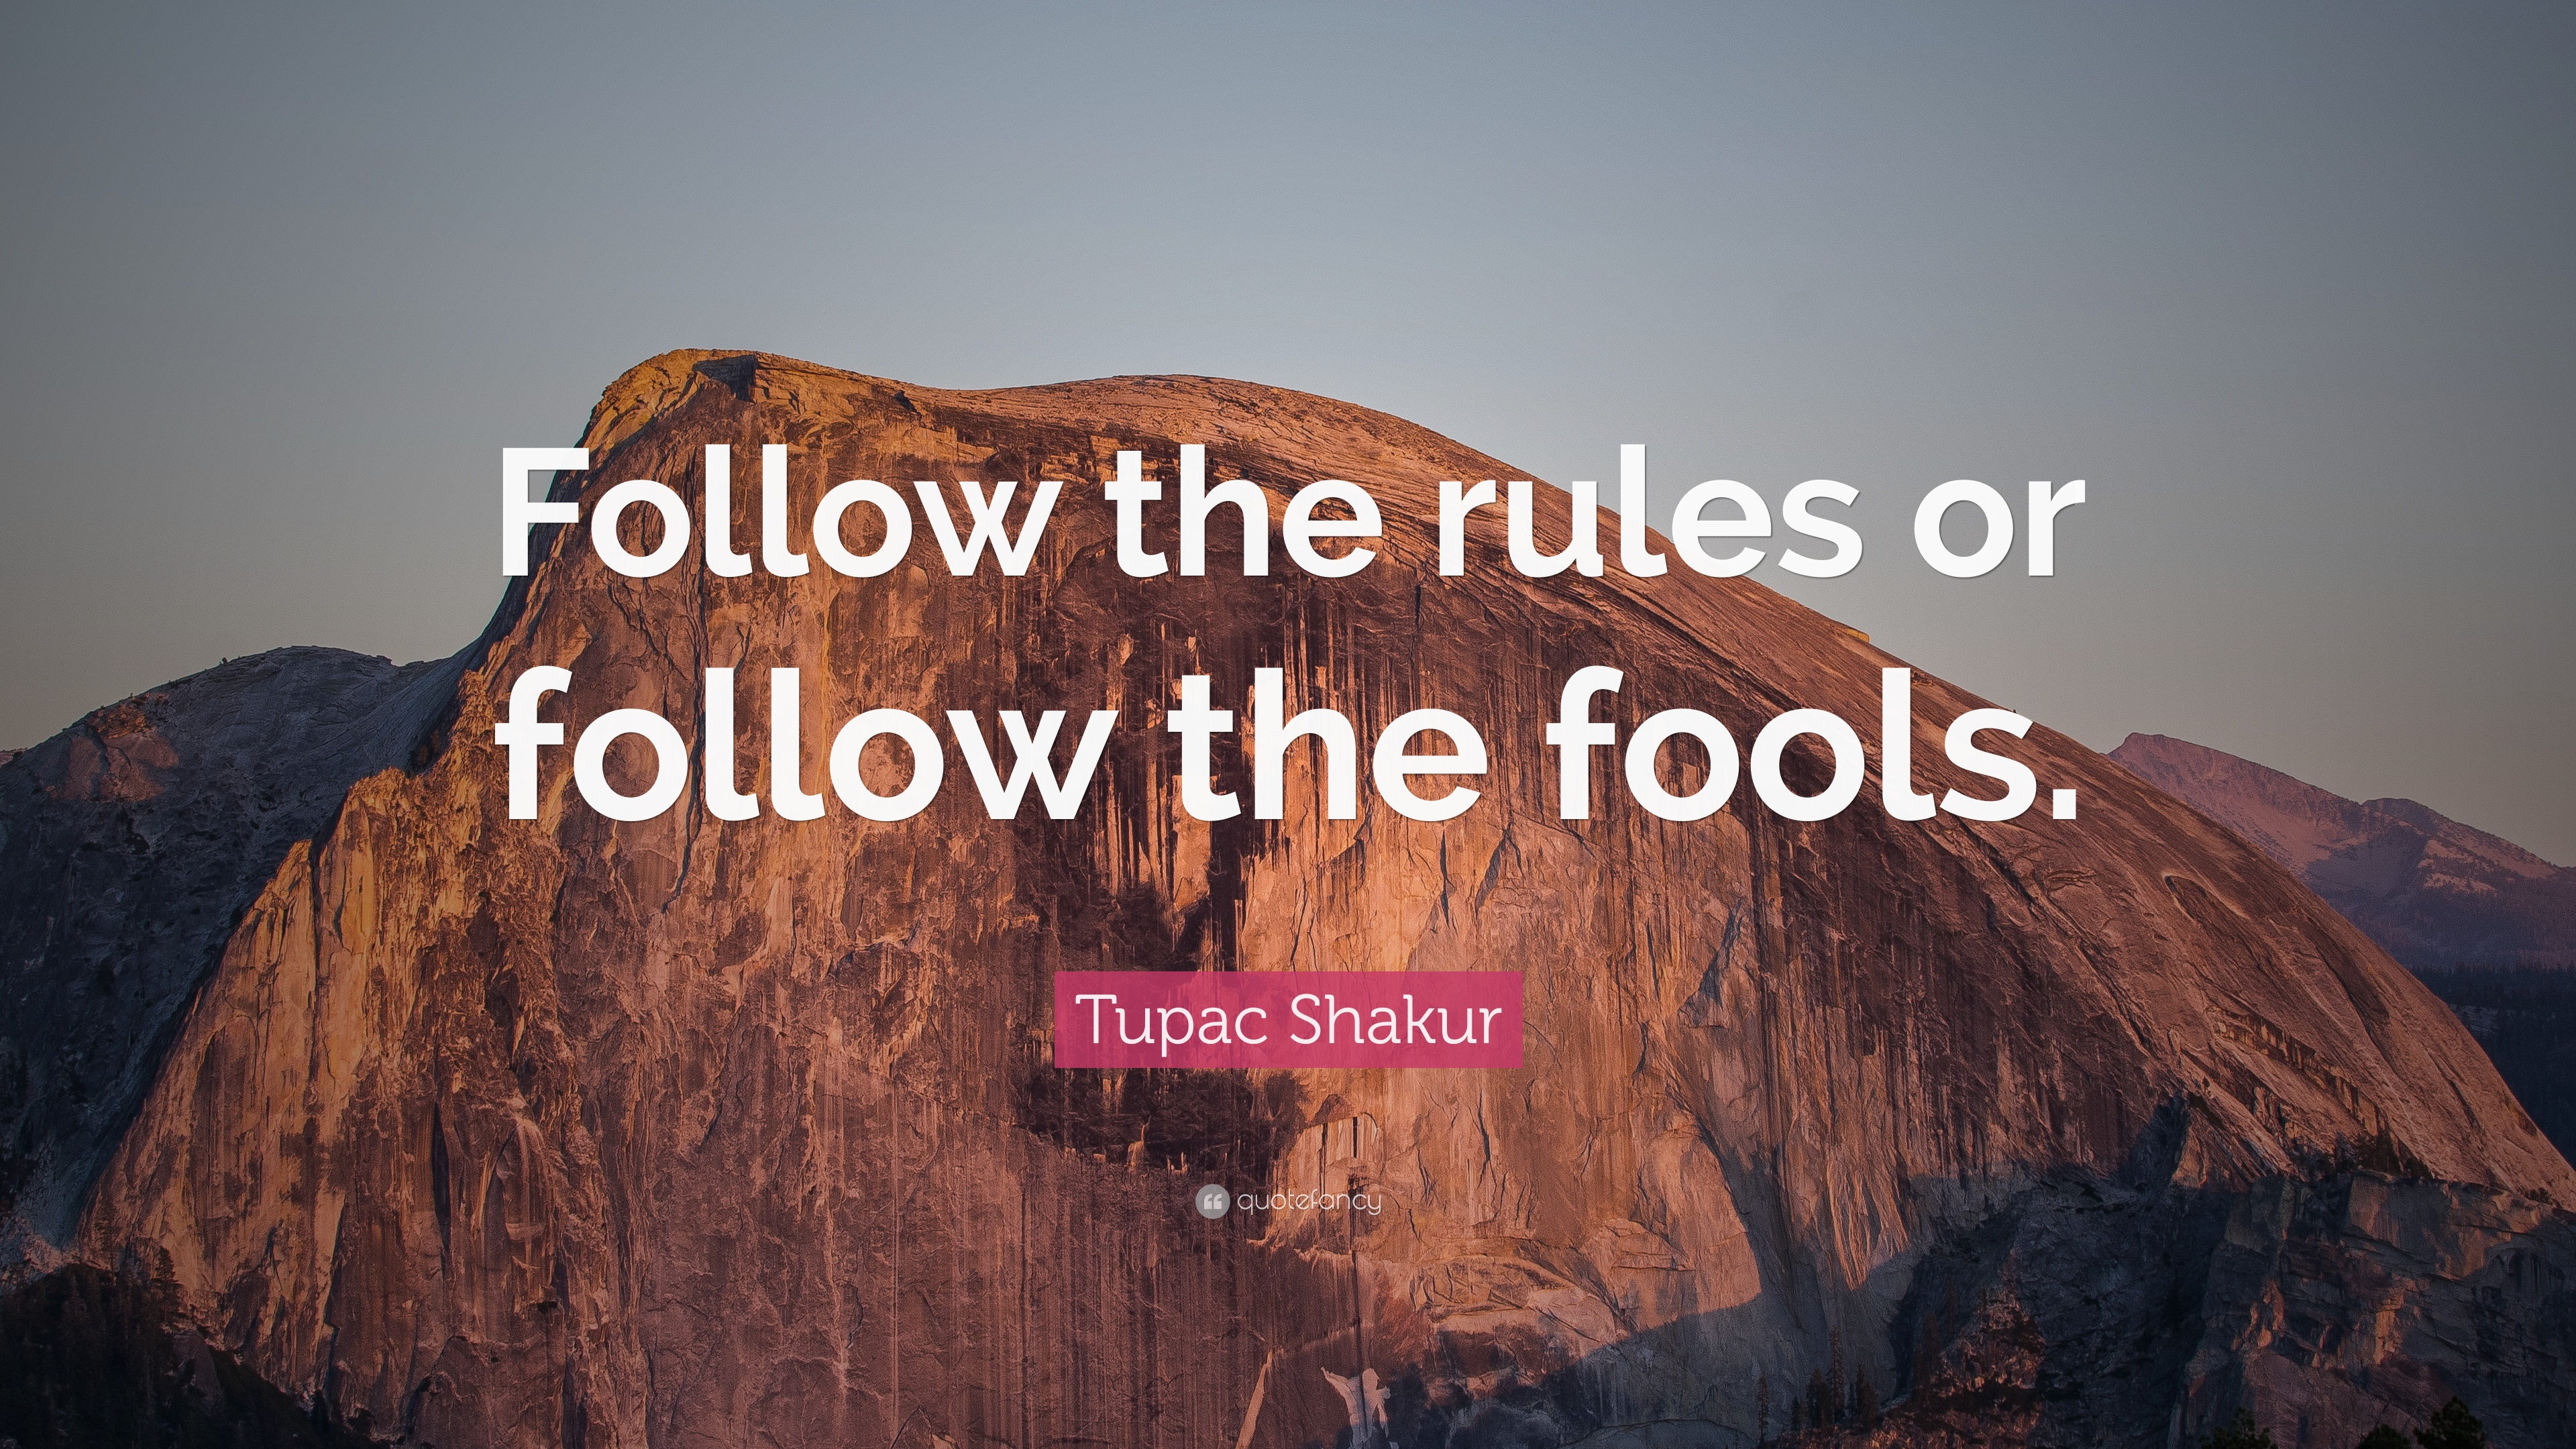 Tupac Shakur Quote Follow The Rules Or Follow The Fools